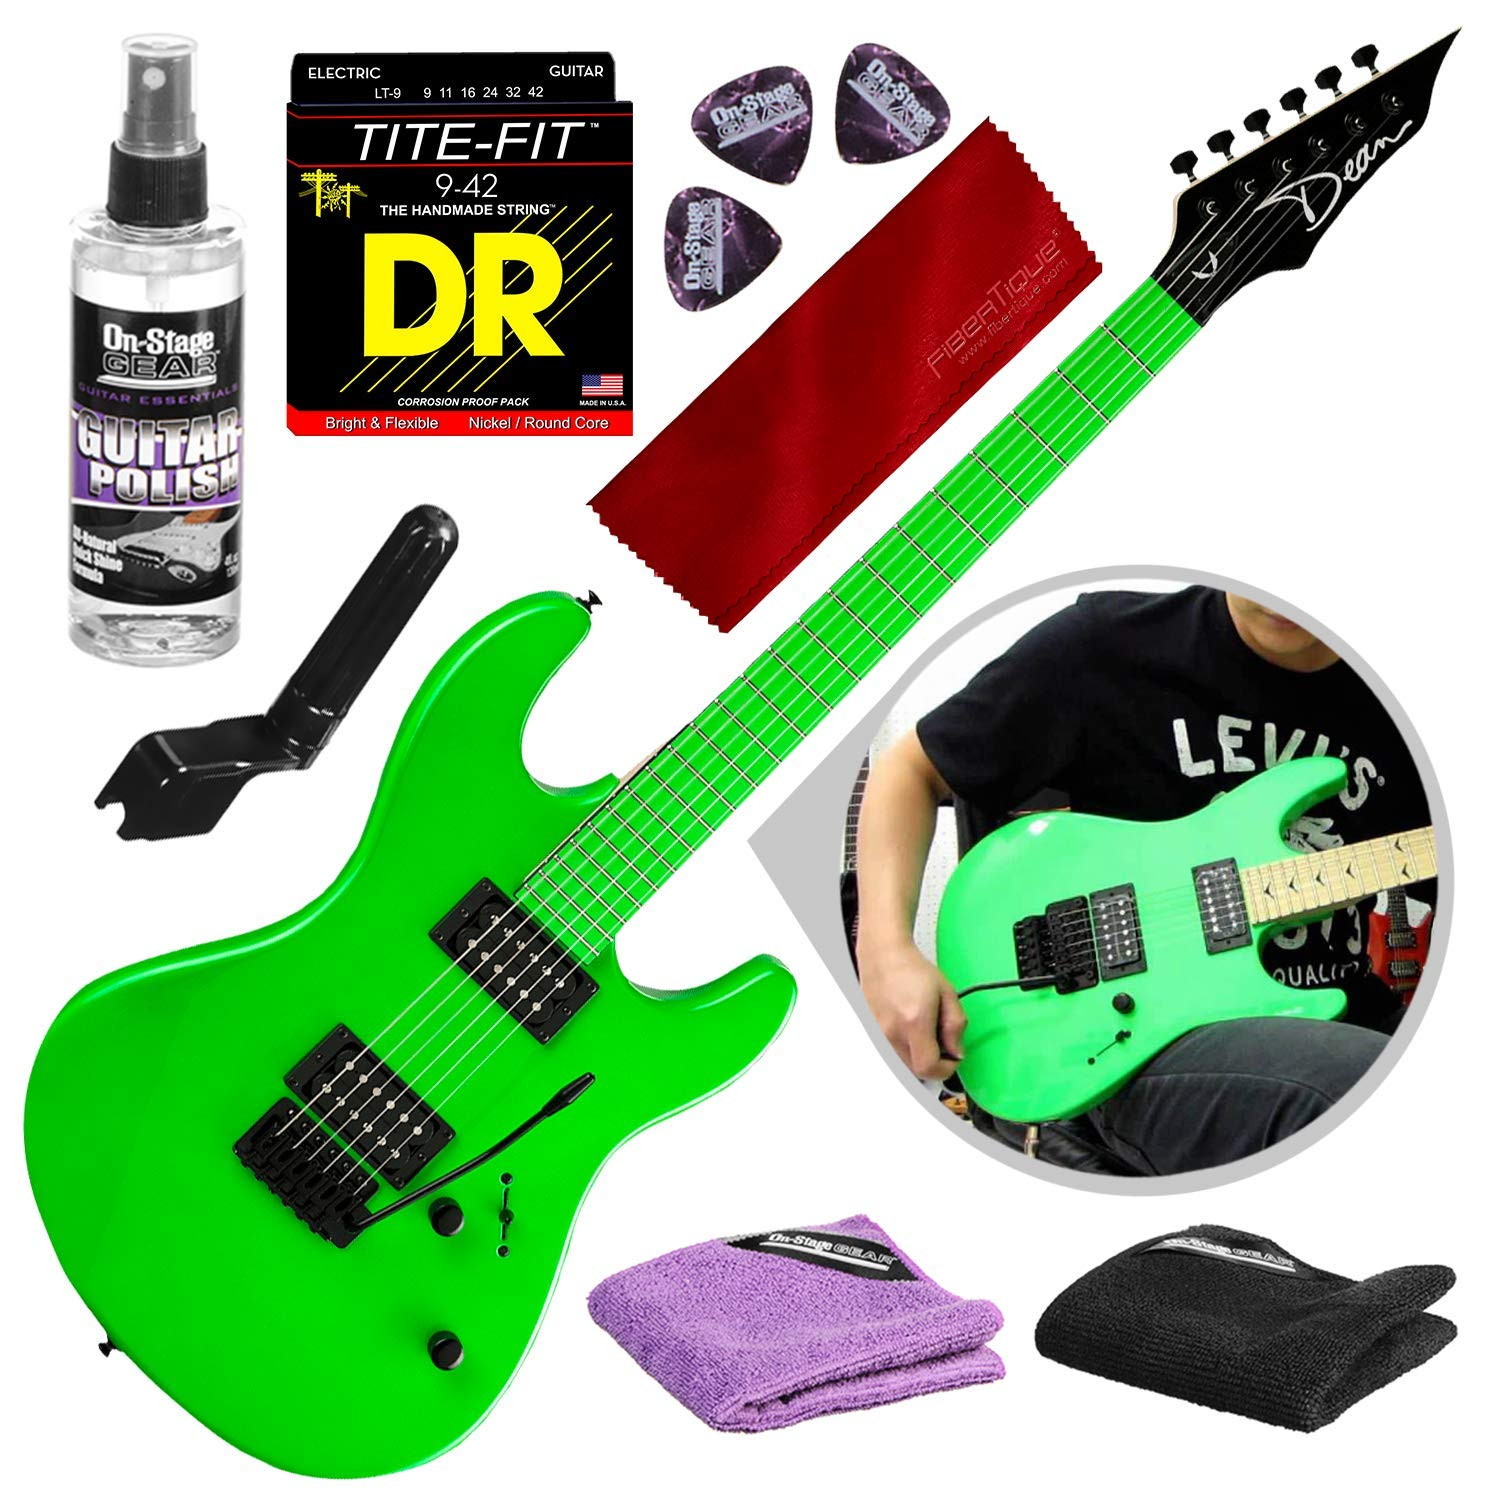 Cheap Dean Custom Zone 2 HB Solid Body Electric Guitar Fluorescent Green with Strings & Accessory Bundle Black Friday & Cyber Monday 2019